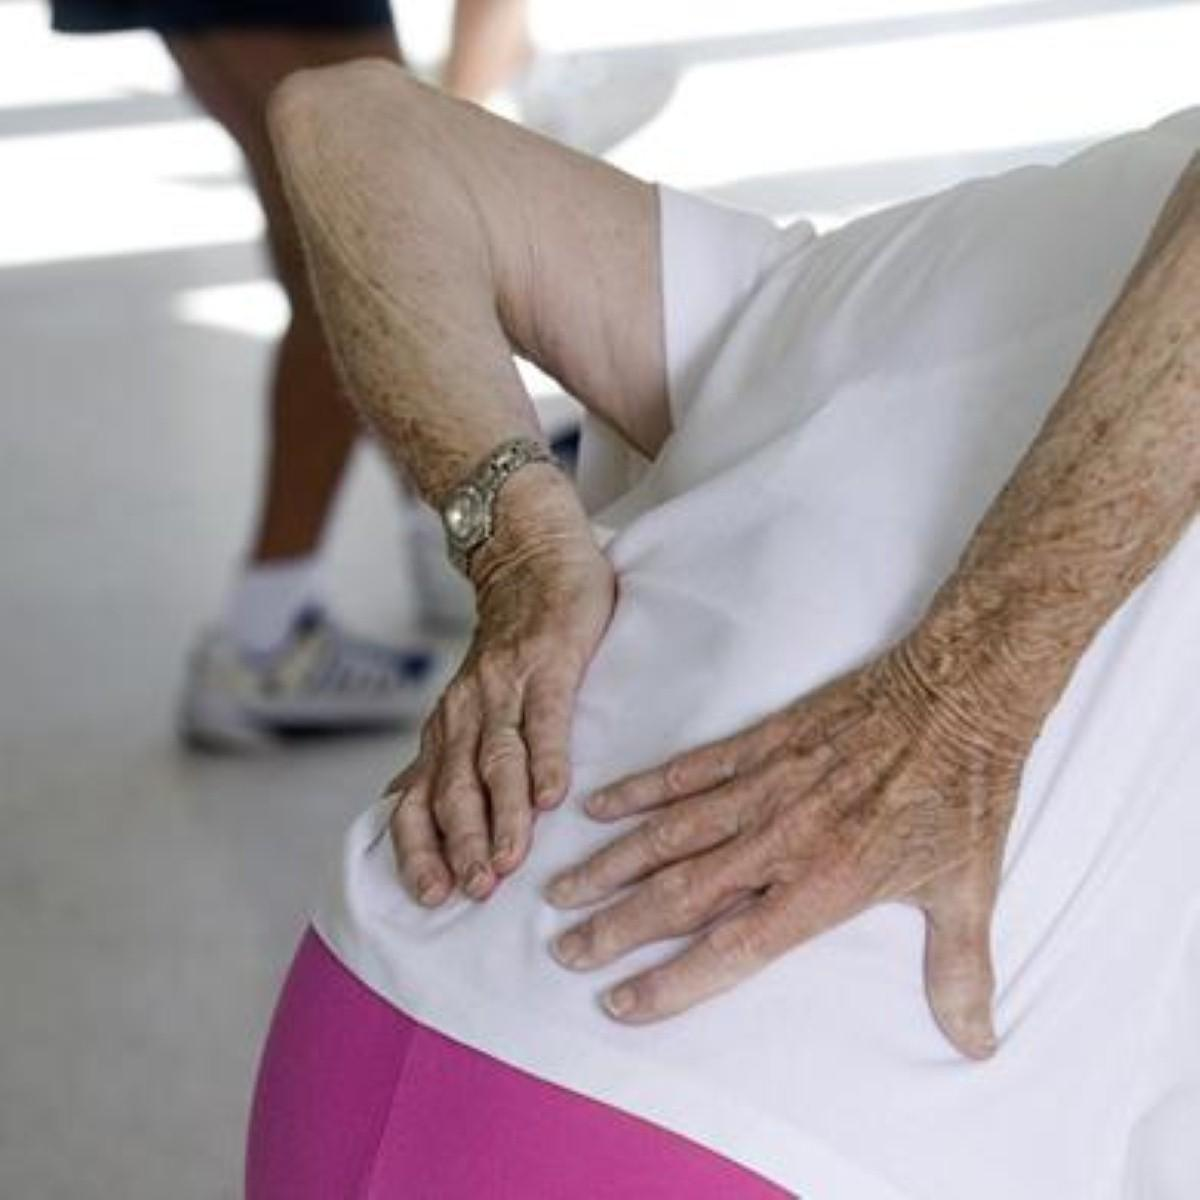 Good posture and treatment are vital to combat back pain